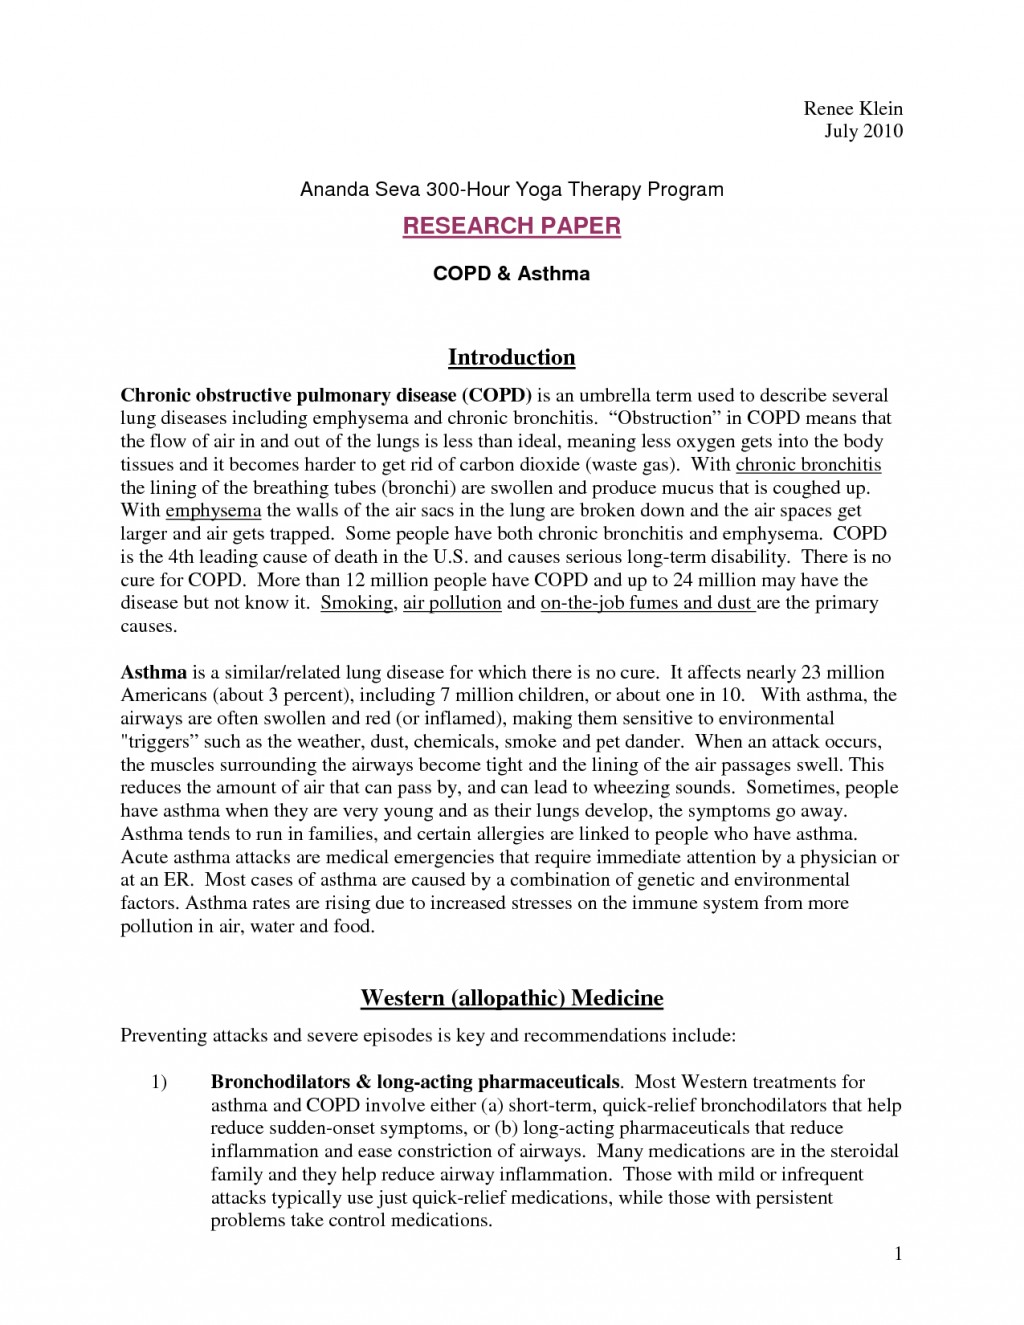 003 How To Write Good Essay Introduction Example Best Photos Of Writing Portfolio Sample Introductions L University Examples Research Paper College Remarkable A And Conclusion For History Large